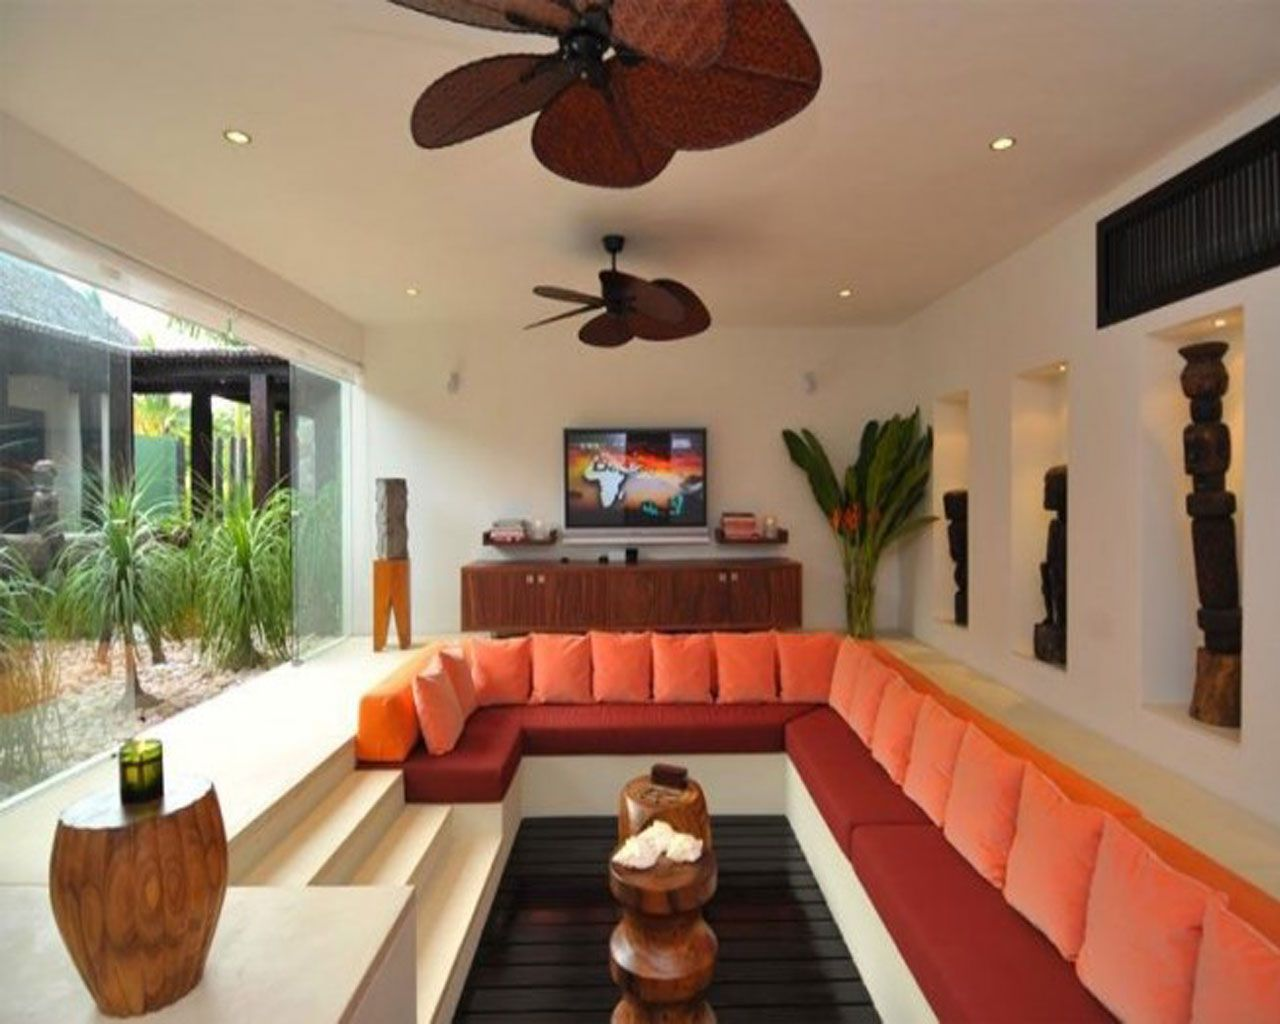 Google Image Result For Httpthemaisonettewpcontent Amazing Modern Living Room Design Ideas 2012 2018